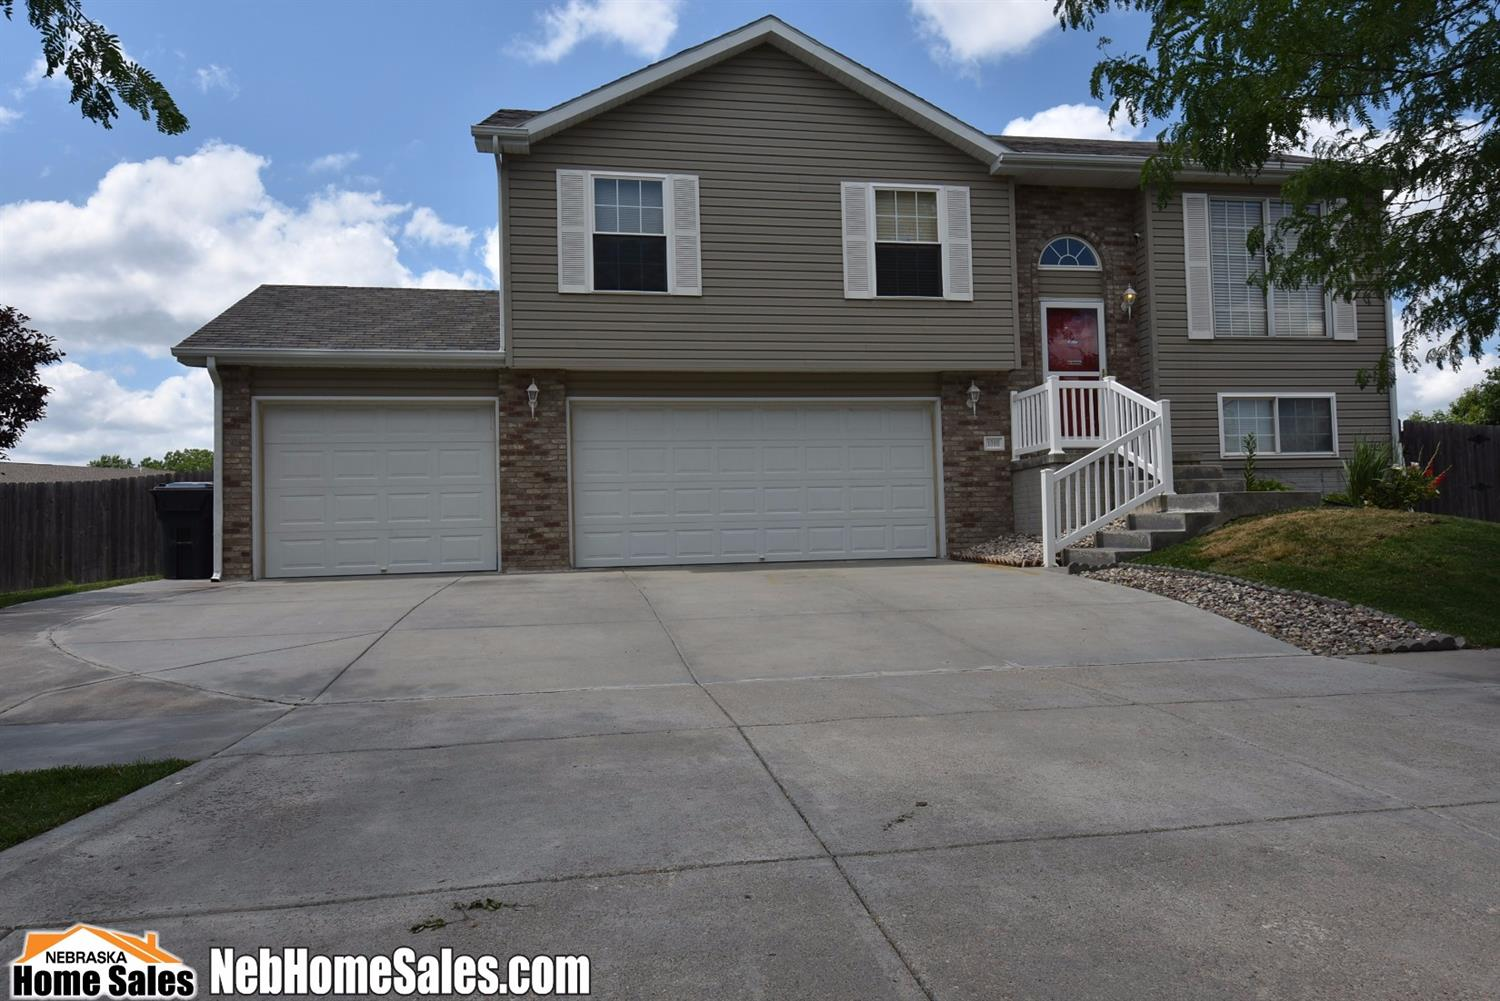 Detached Residential, SplitFoyer - Lincoln, NE (photo 1)